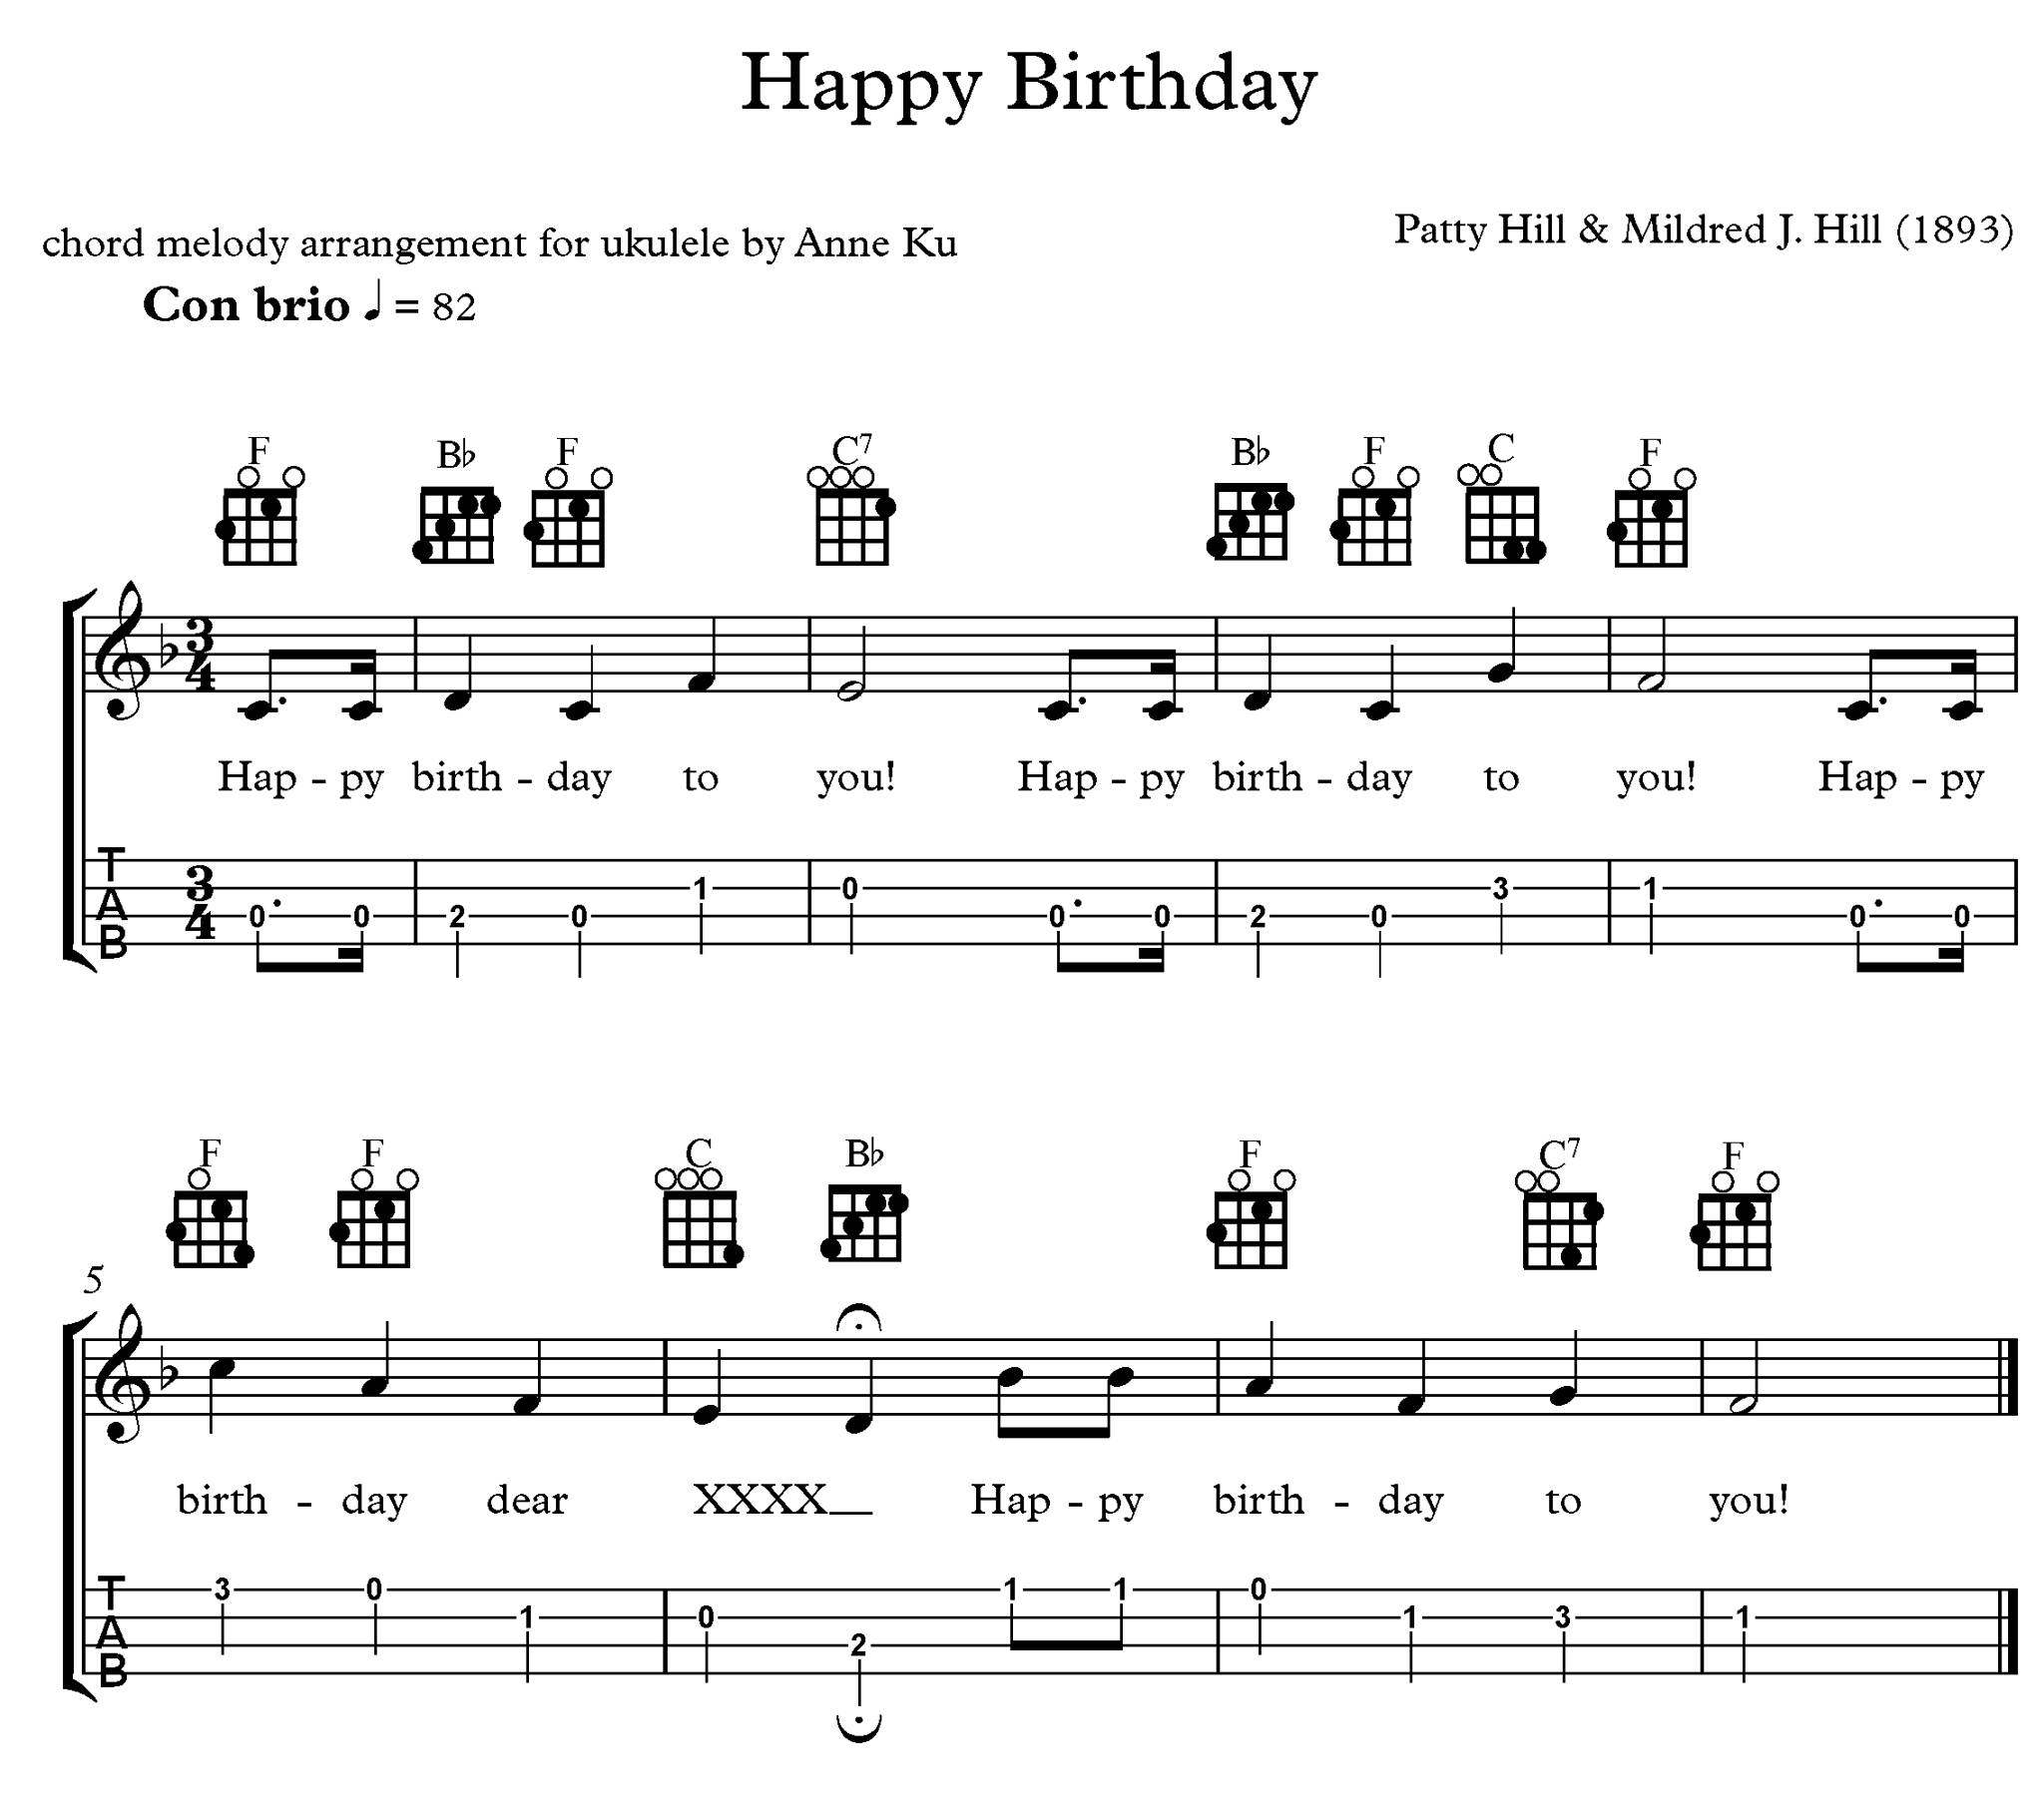 Happy Birthday Chord Melody Arrangement For Ukulele –Anne